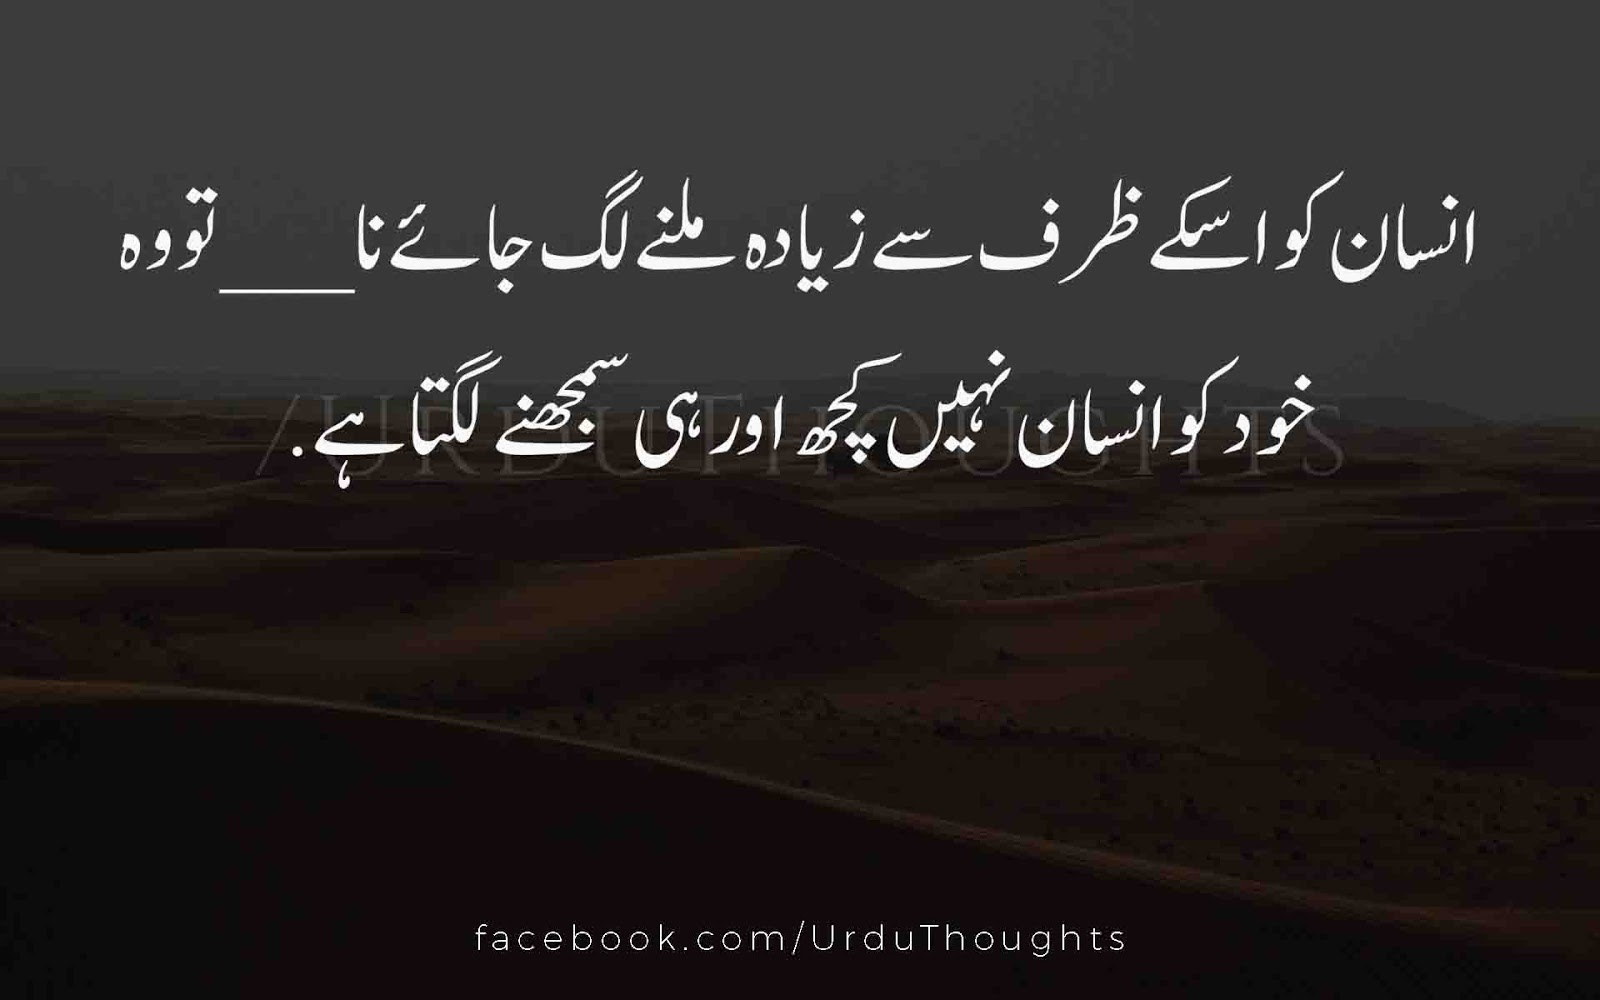 Best Urdu Quotes With Images